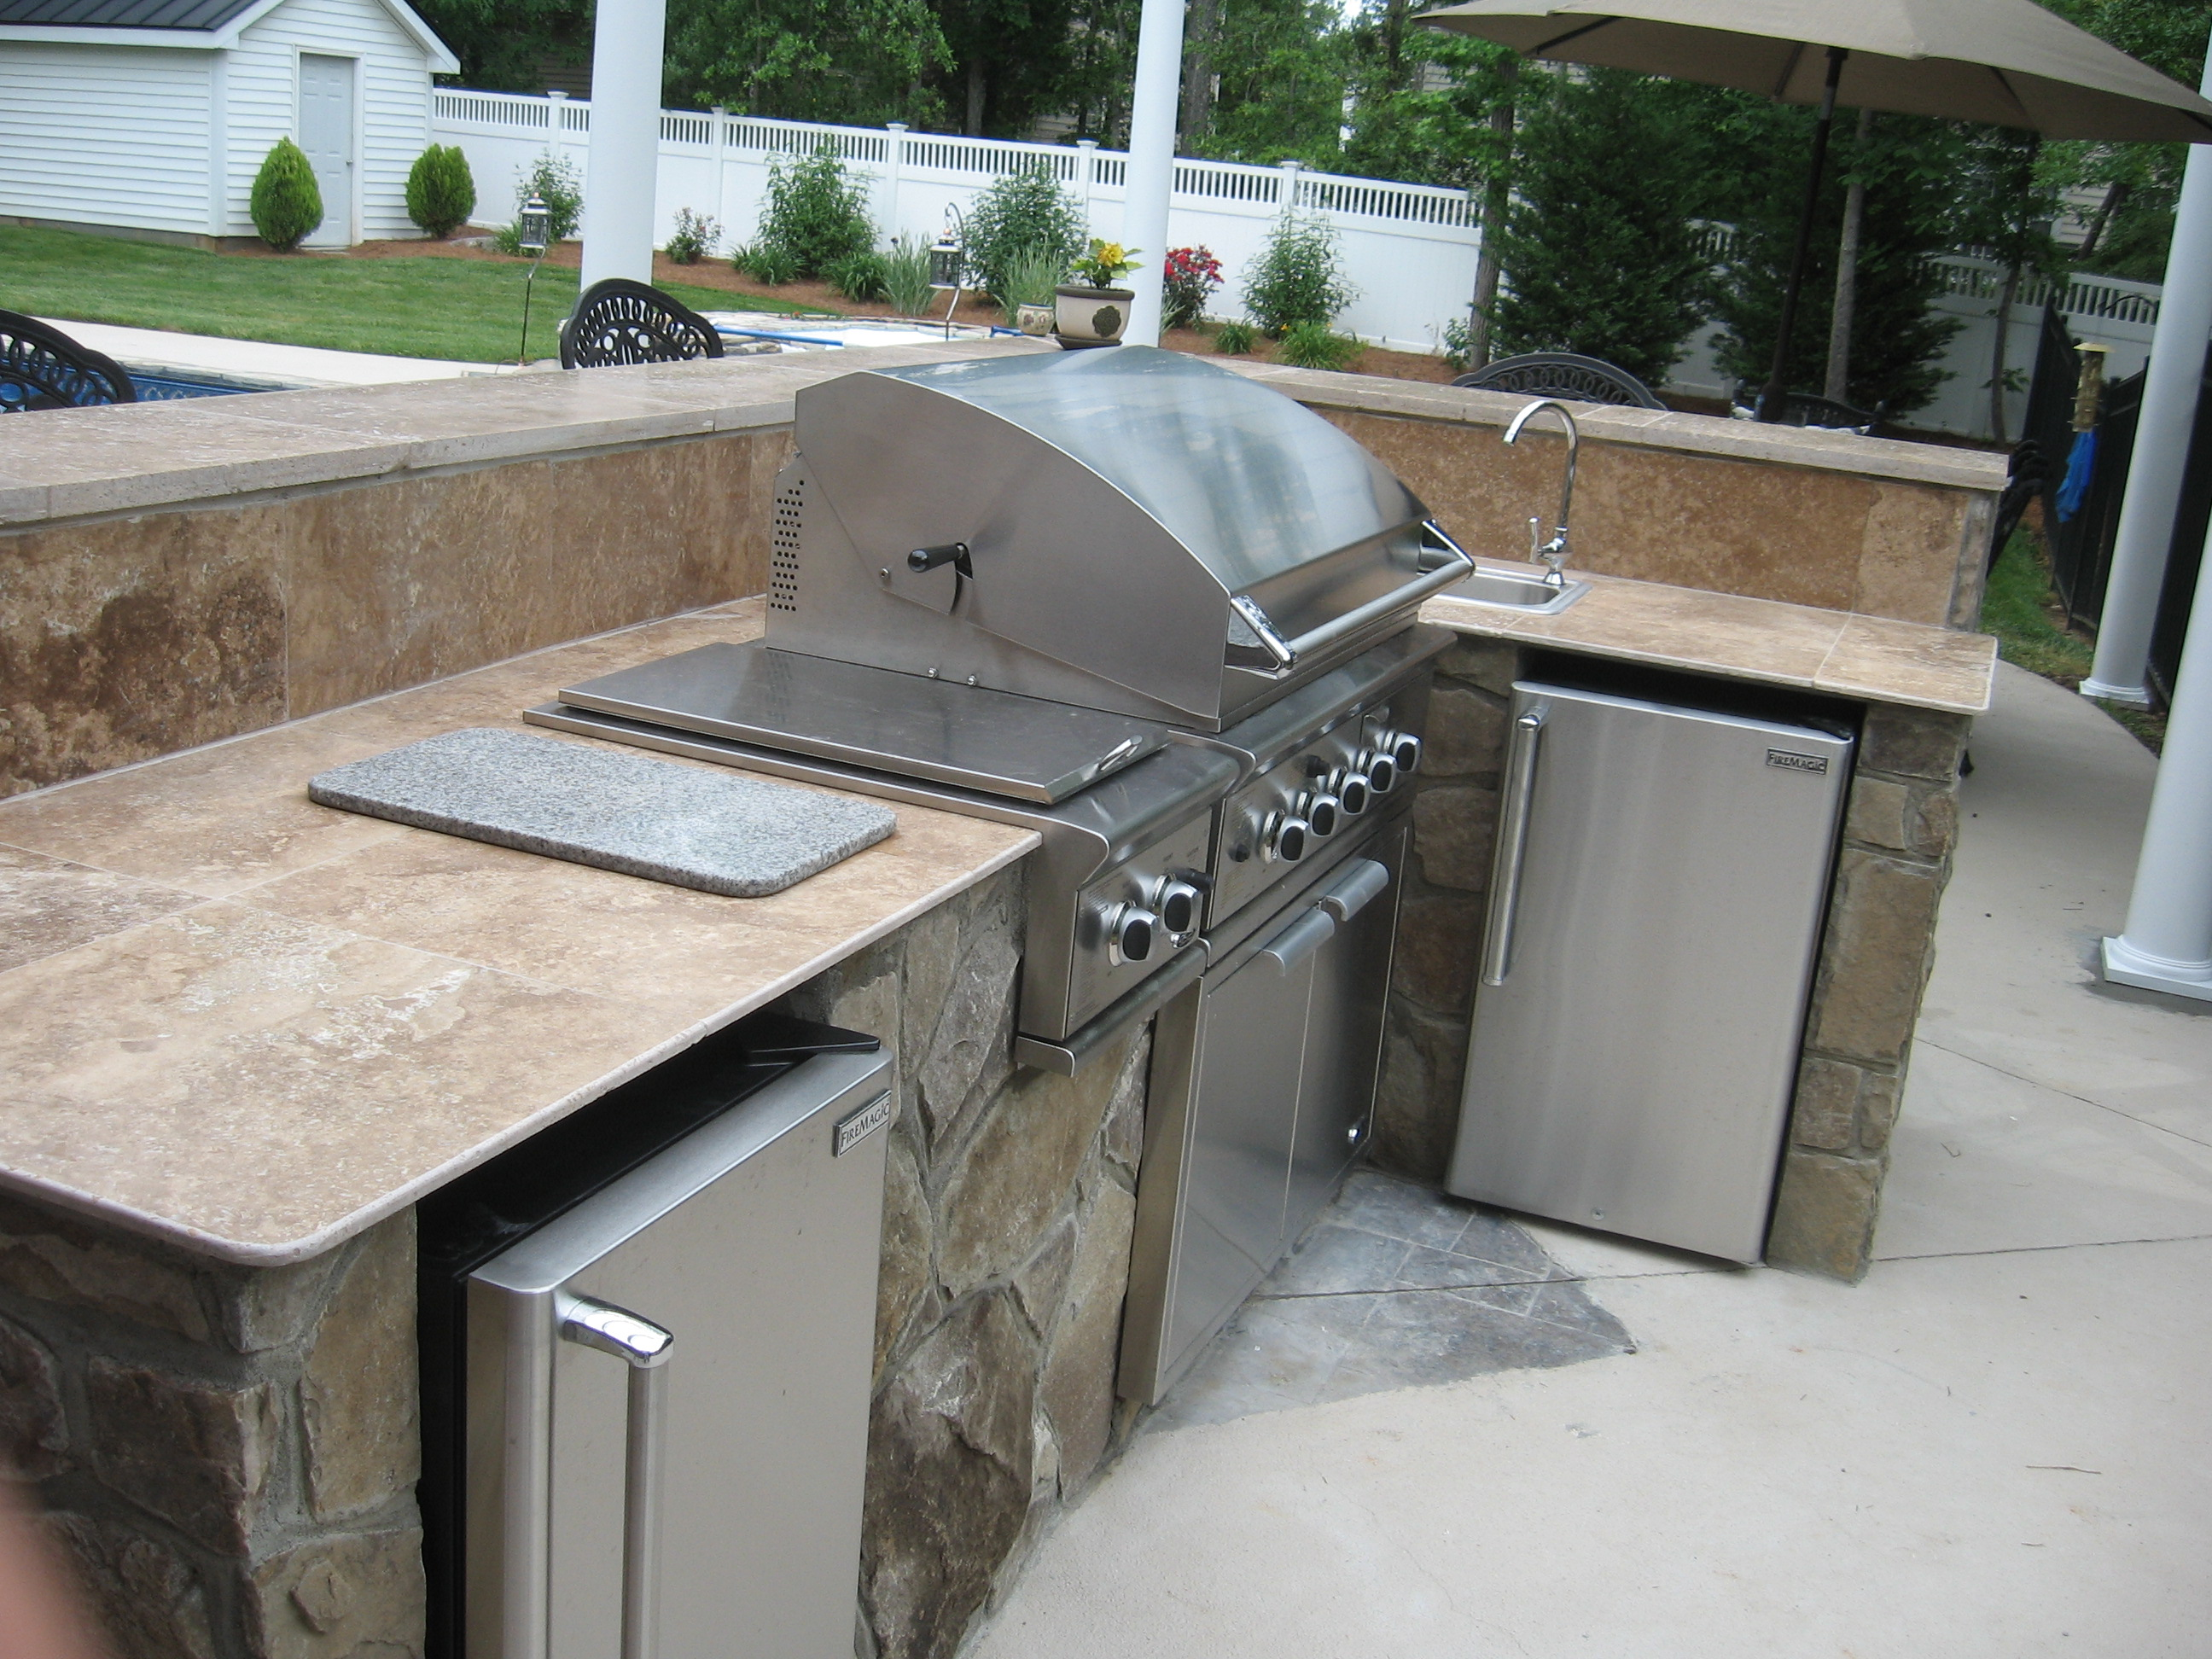 Outdoor Stone Sink : stone outdoor kitchen Charlotte with travertine countertop